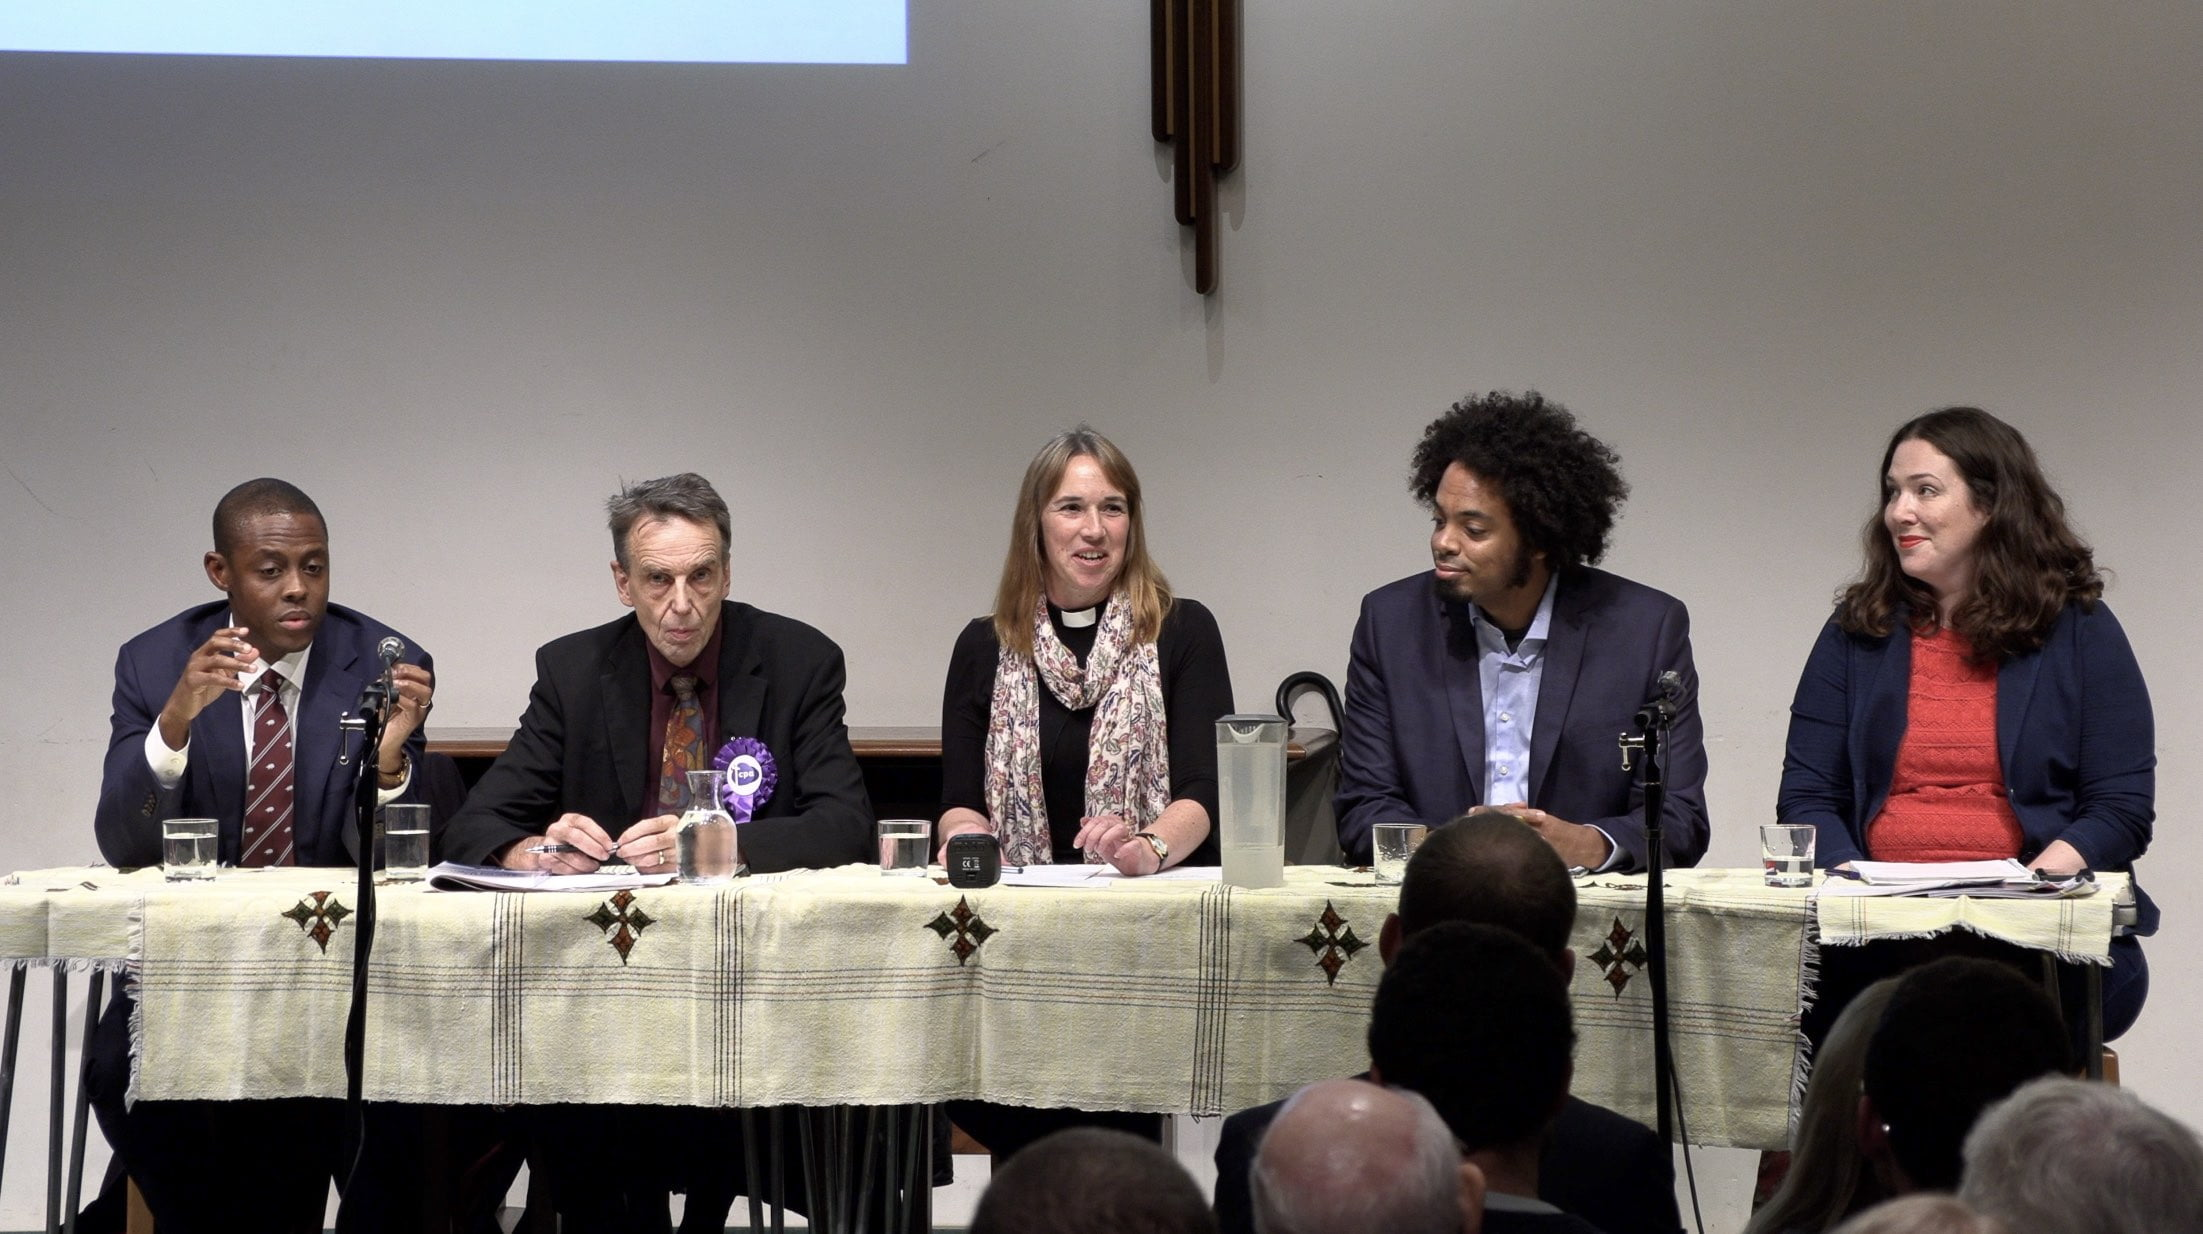 General Election Hustings for the Hitchin and Harpenden Constituency 2019